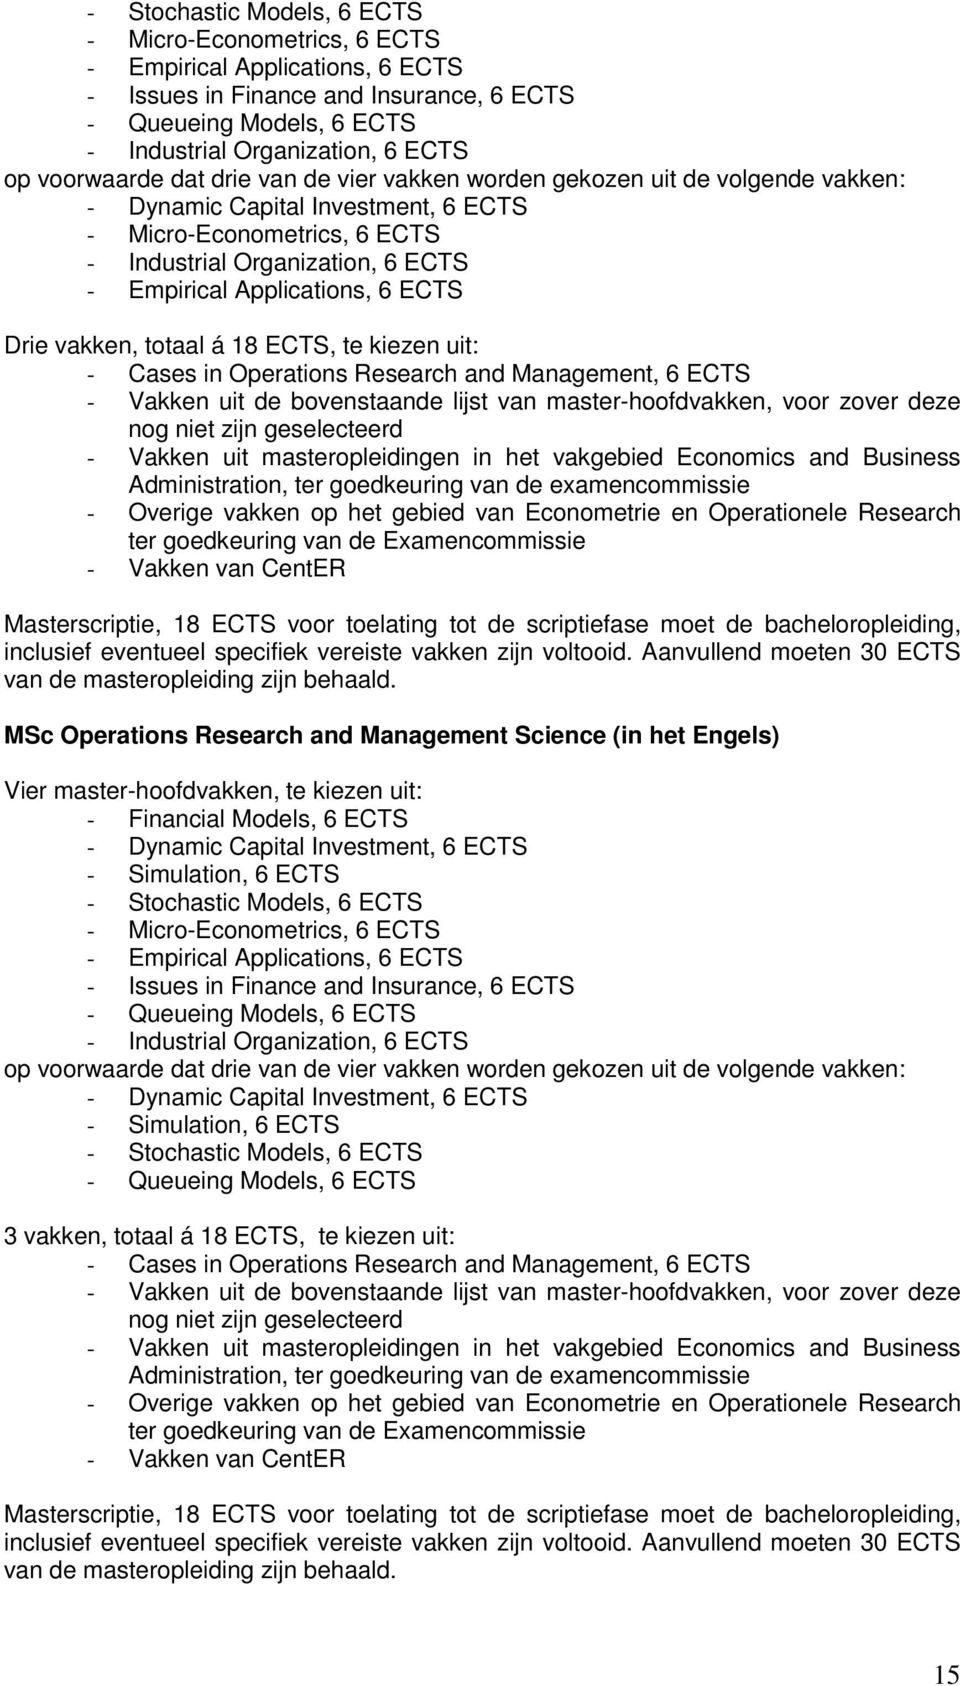 Applications, 6 ECTS Drie vakken, totaal á 18 ECTS, te kiezen uit: - Cases in Operations Research and Management, 6 ECTS - Vakken uit de bovenstaande lijst van master-hoofdvakken, voor zover deze nog